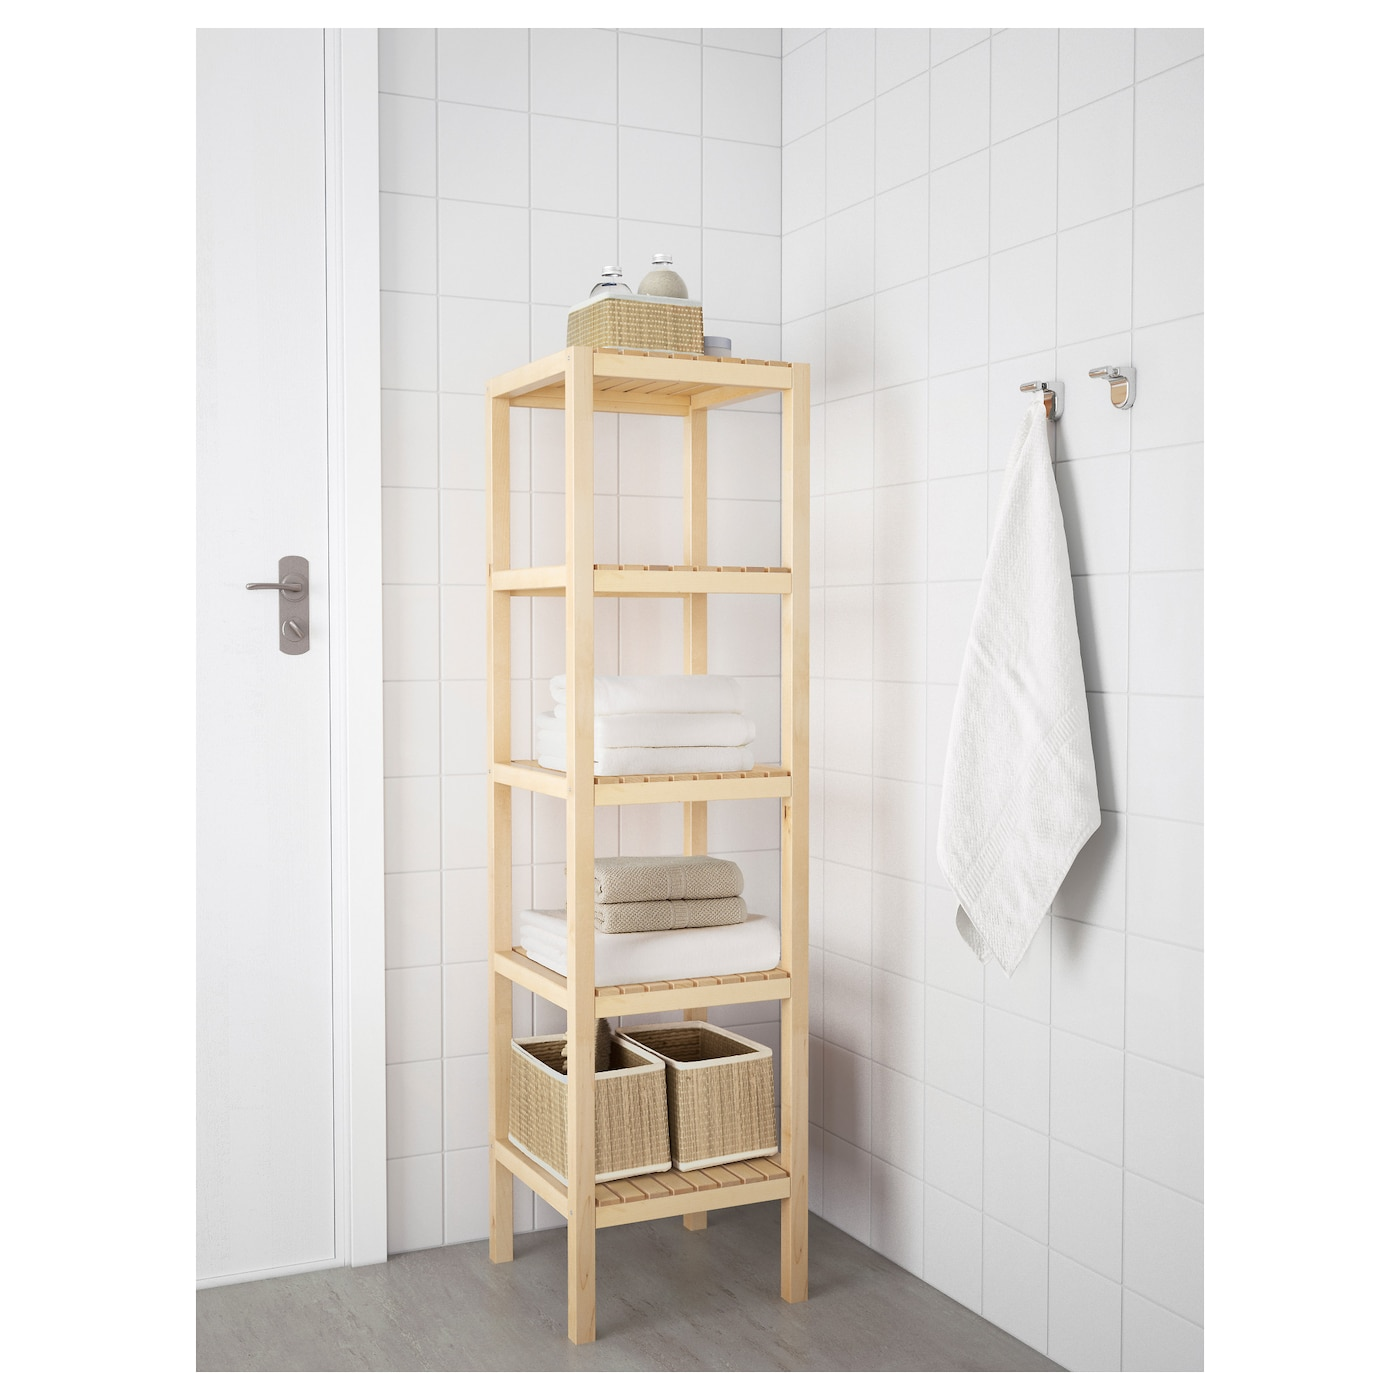 molger shelving unit birch 37 x 140 cm ikea. Black Bedroom Furniture Sets. Home Design Ideas